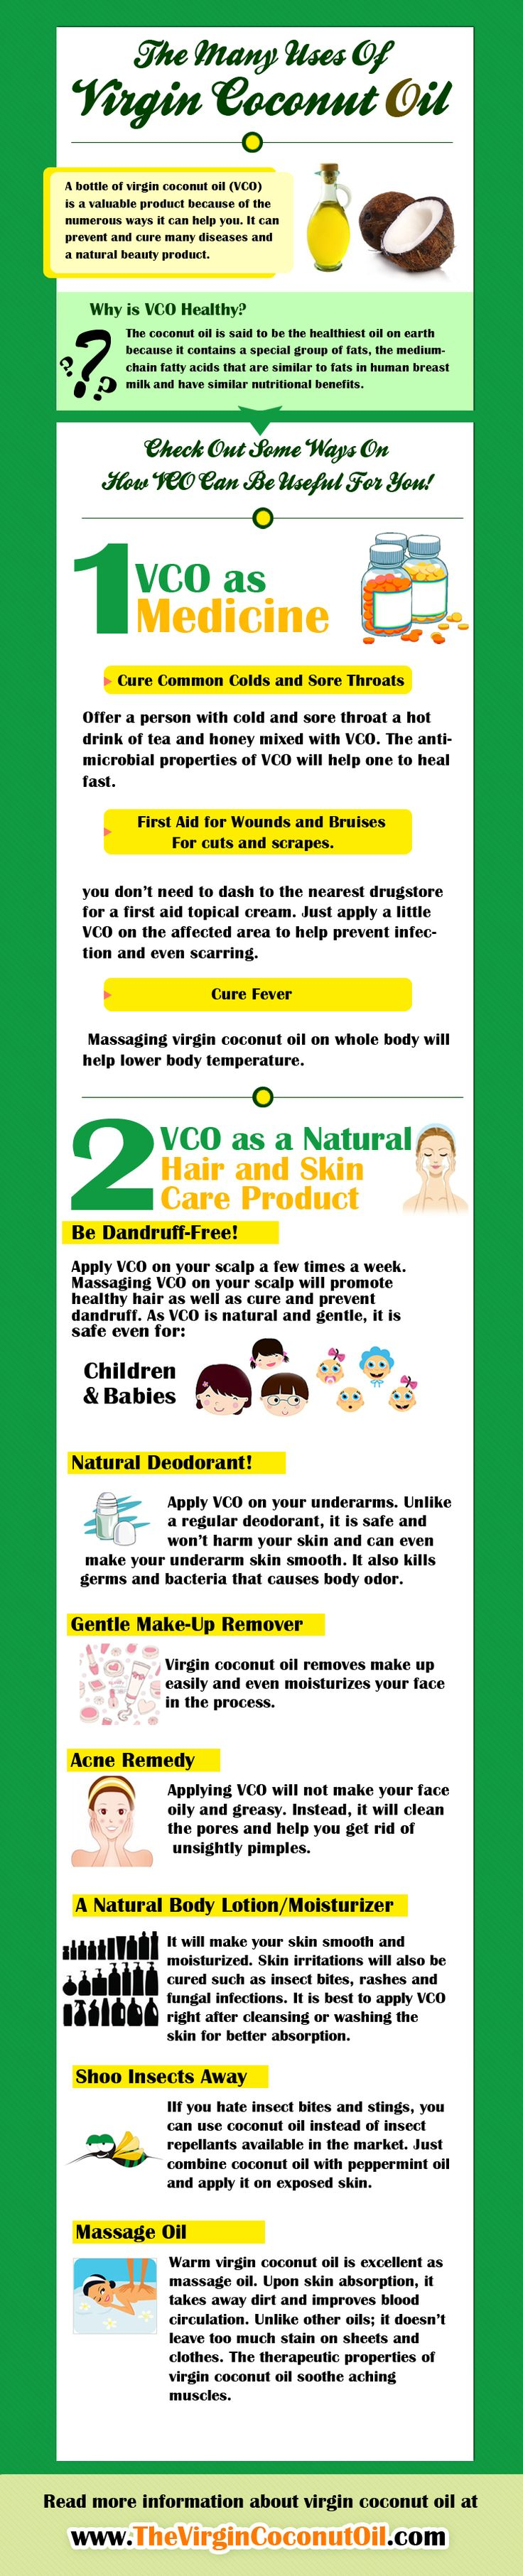 The Many Benefits of Coconut Oil Infographic - Virgin Coconut Oil